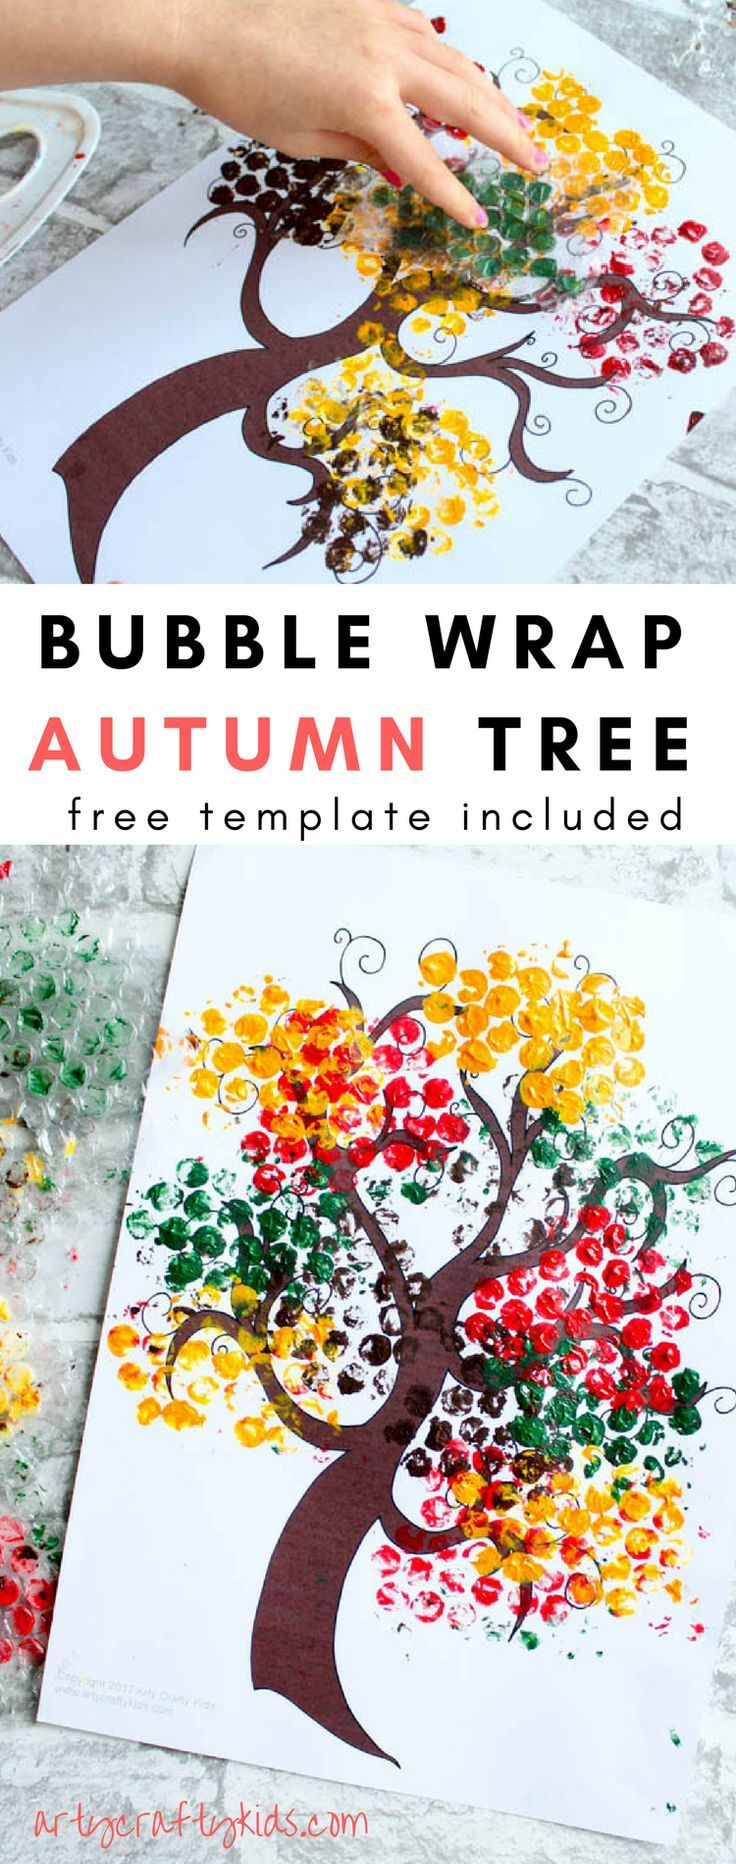 Arty Crafty Kids | Seasonal | Autumn Crafts for Kids | Bubble Wrap Autumn Tree Craft | A fun and simple Autumn Tree Craft for Kids, with a free tree template included for download! #kidsart #kidscrafts #freetemplate #processart